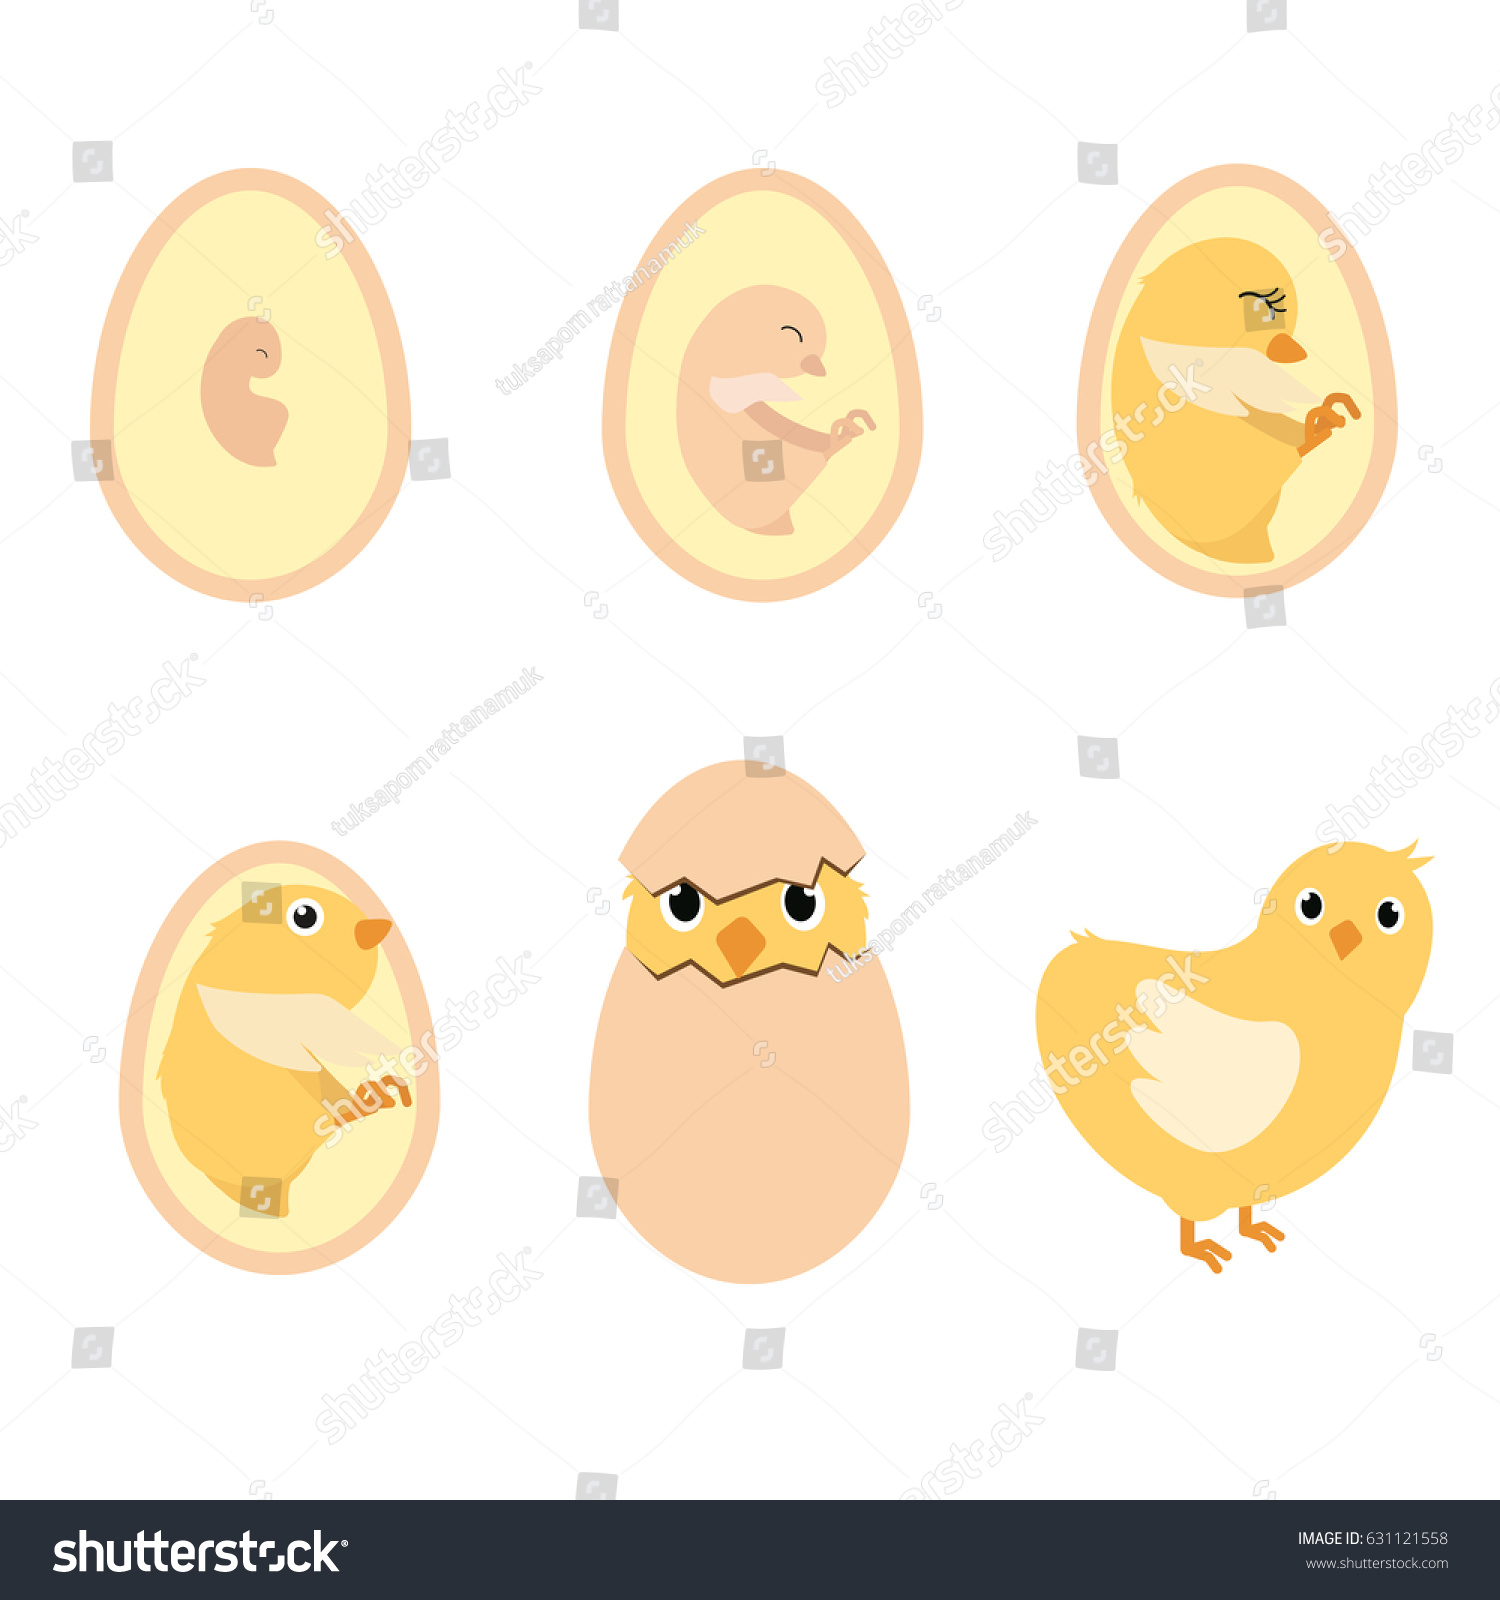 Chicken Egg Life Cycle Anatomy Illustration Stock Vector 631121558 ...